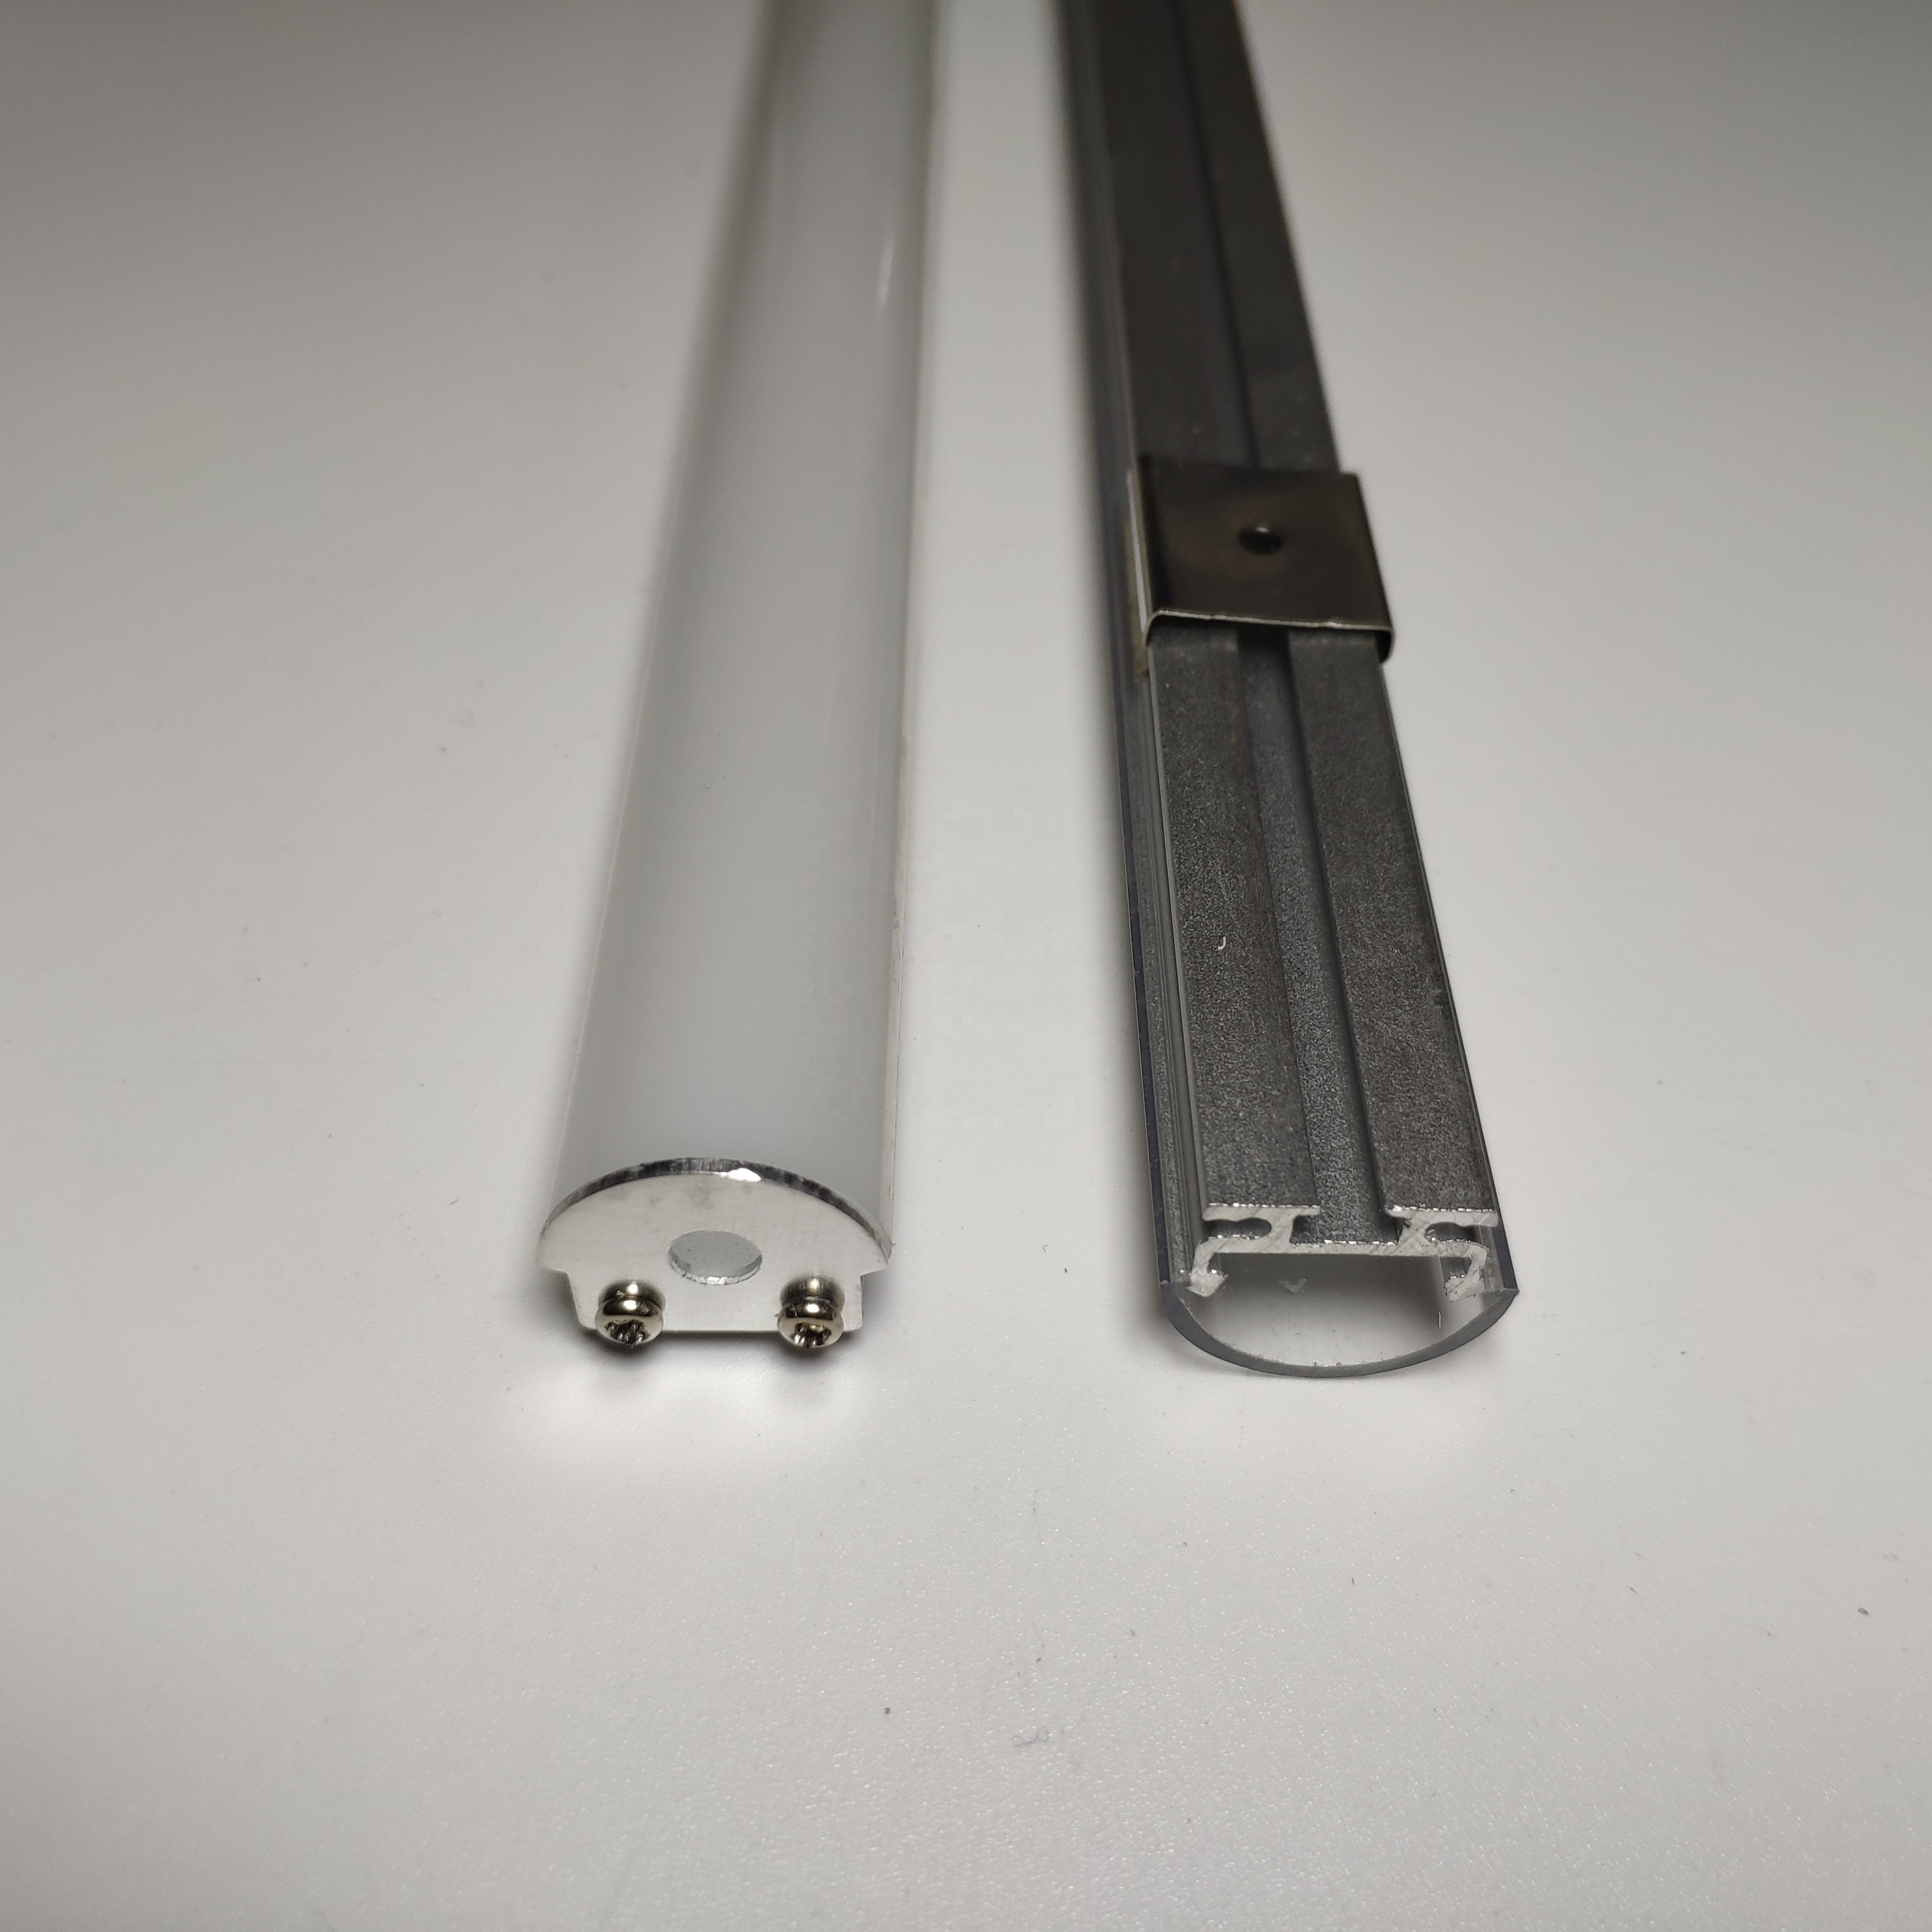 Recessed Linear Light <strong>Aluminium</strong> 17.7mmx8.5mm Extrusion Channel For Plaster Ceilings LED hanging profile housing